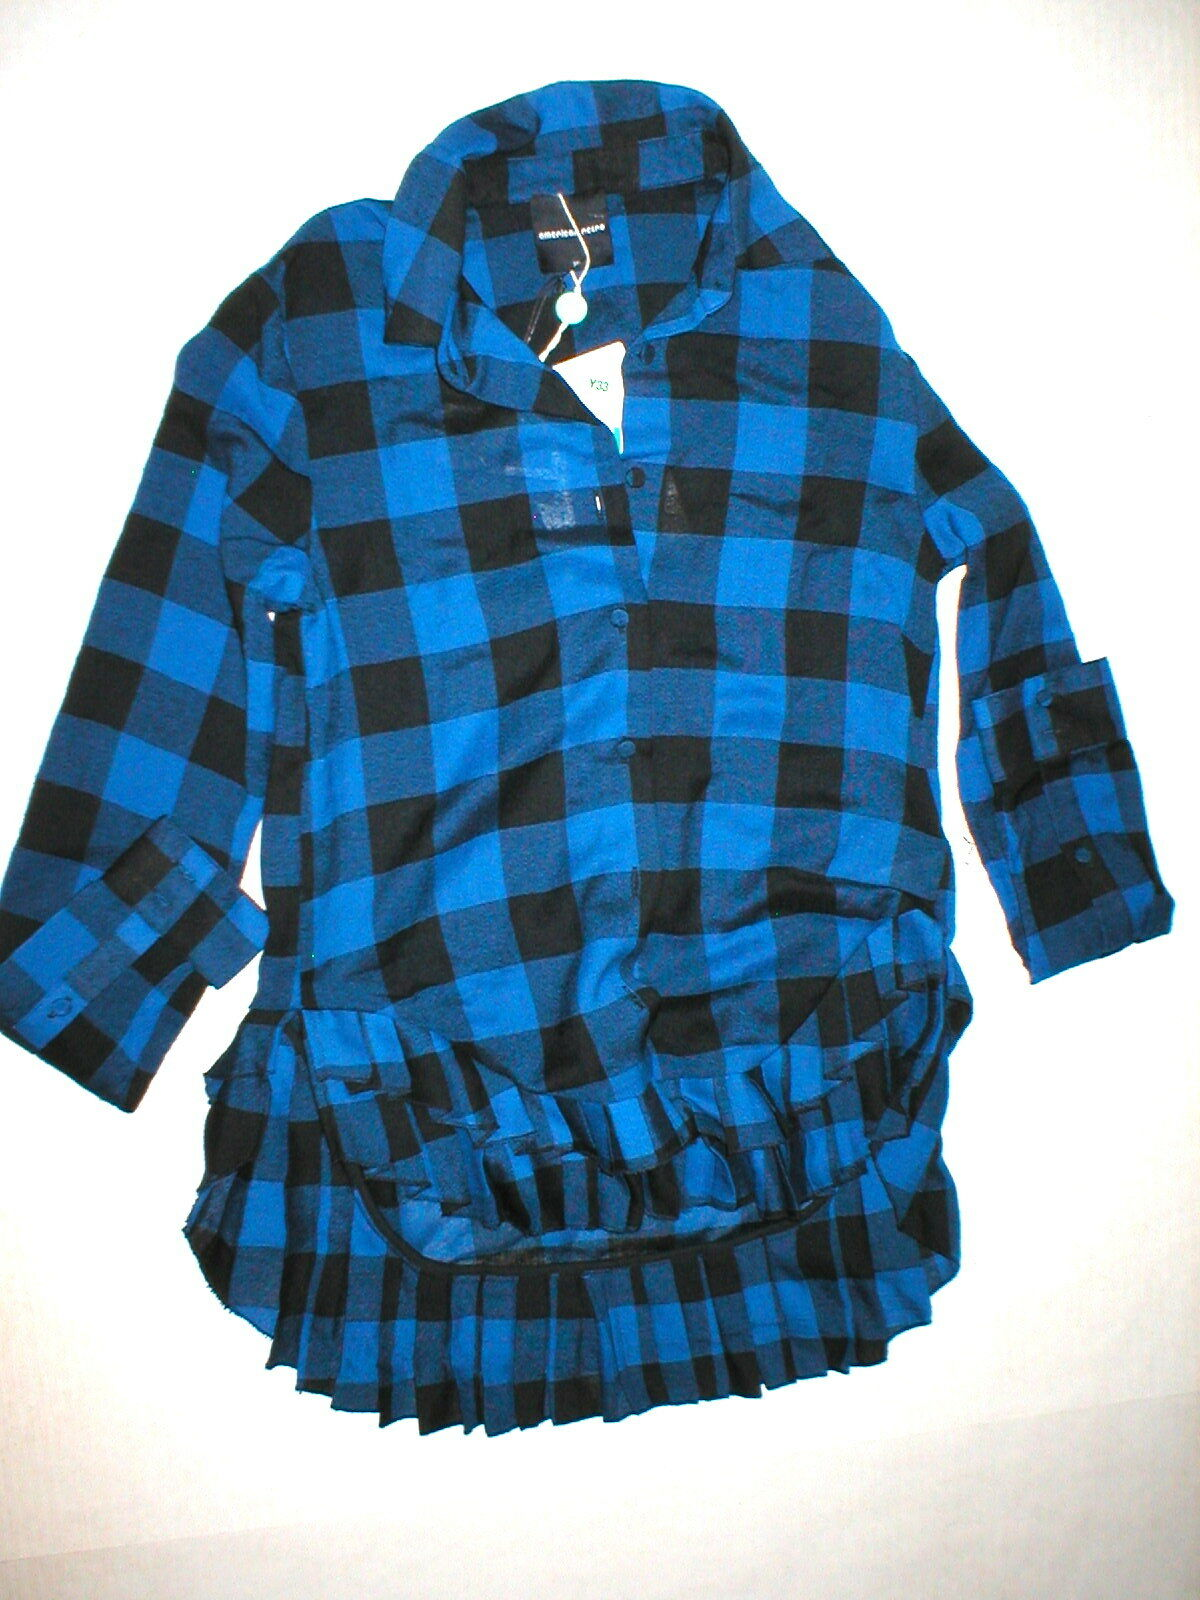 damen 4 New NWT 36 S American Retro Designer Plaid Top Shirt Pleat Blau schwarz